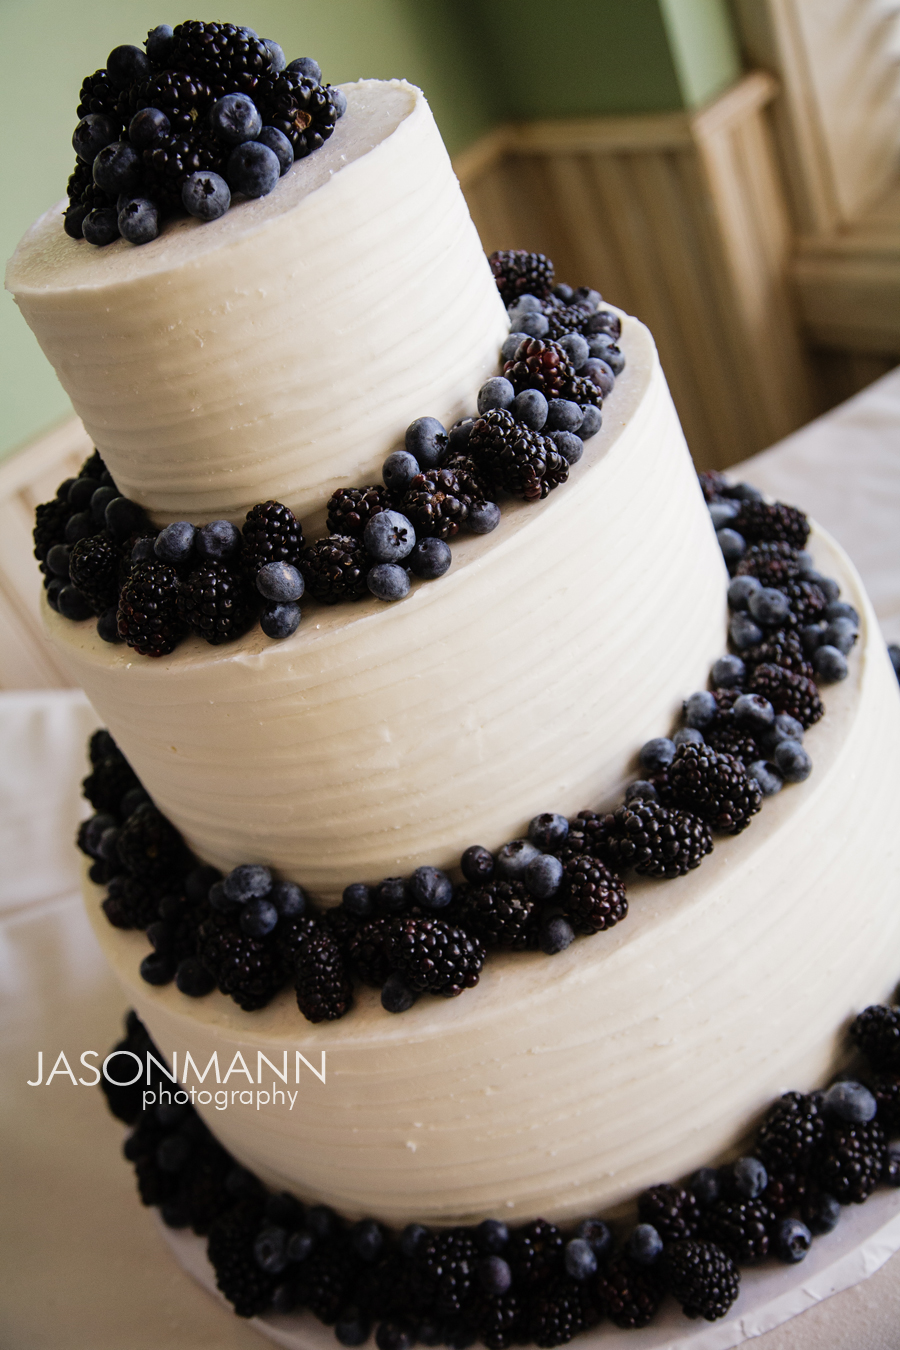 Jason Mann Photography - Door County Wisconsin Wedding Cake